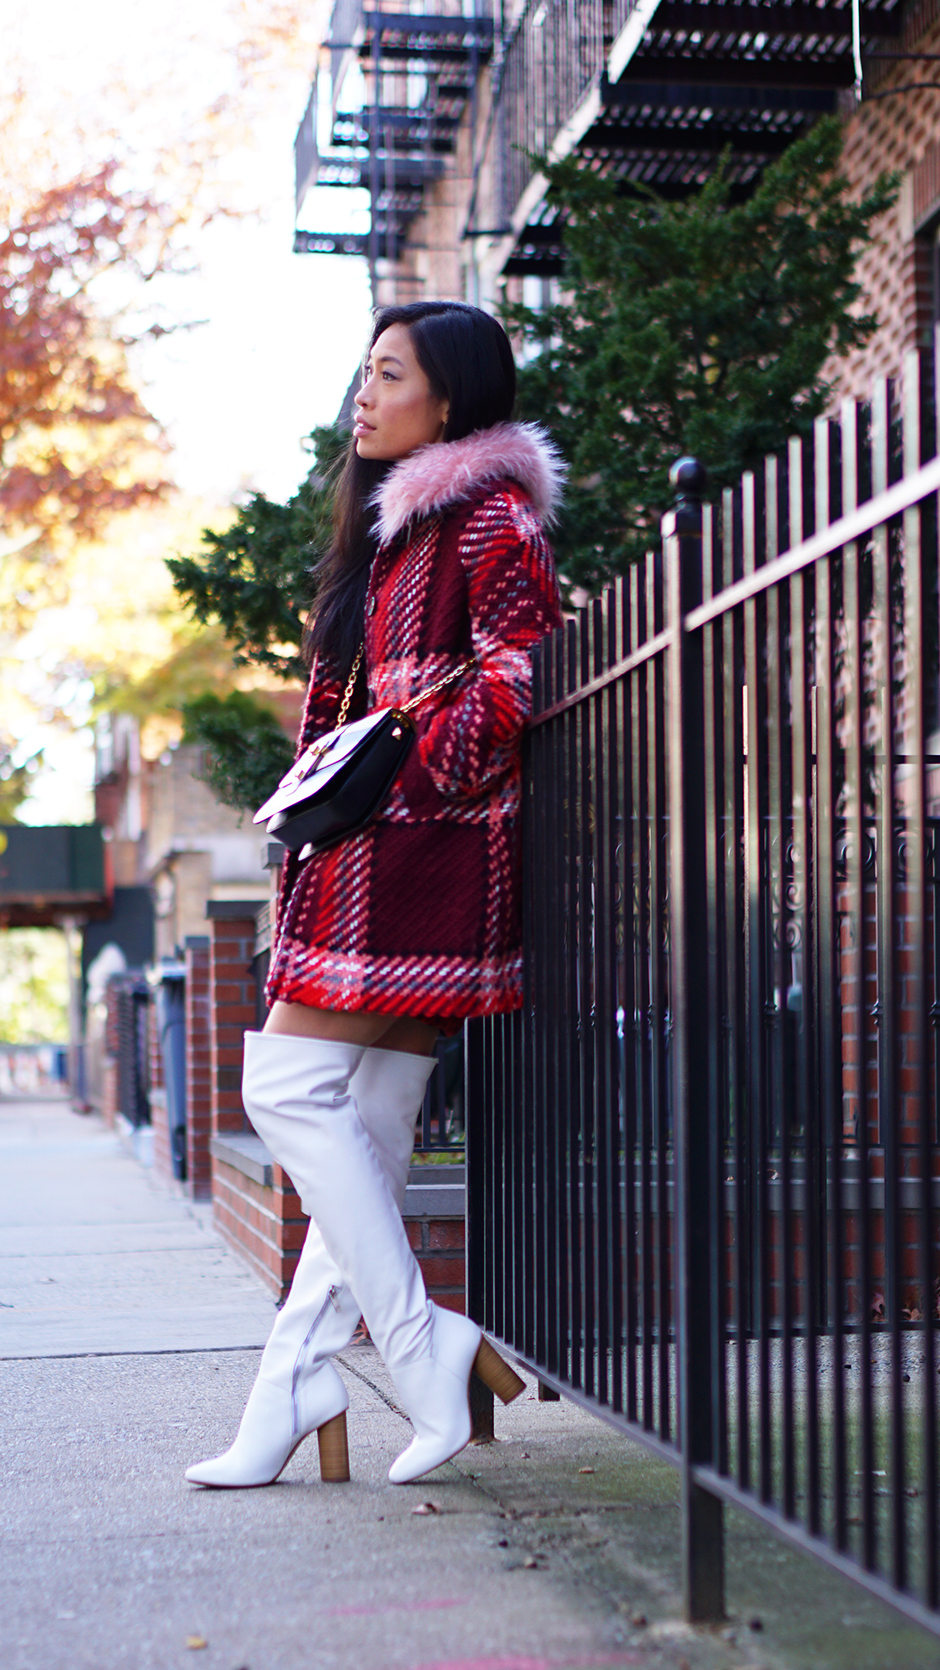 Perfect White Thigh Boots #fashionblogger #whiteboots #thighboots #leatherboots #streetstyle #streetfashion #newyork #newyorkblogger #newyorkinfluencer #newyorker #newyorkcity #fauxfur #plaidcoat #plaidtrend #whiteleather #valentino #valentinobrockstud #valentinogaravani #outfitideas #outfitinspo #outfitinspiration #streetfashion #zara #zaraoutfit